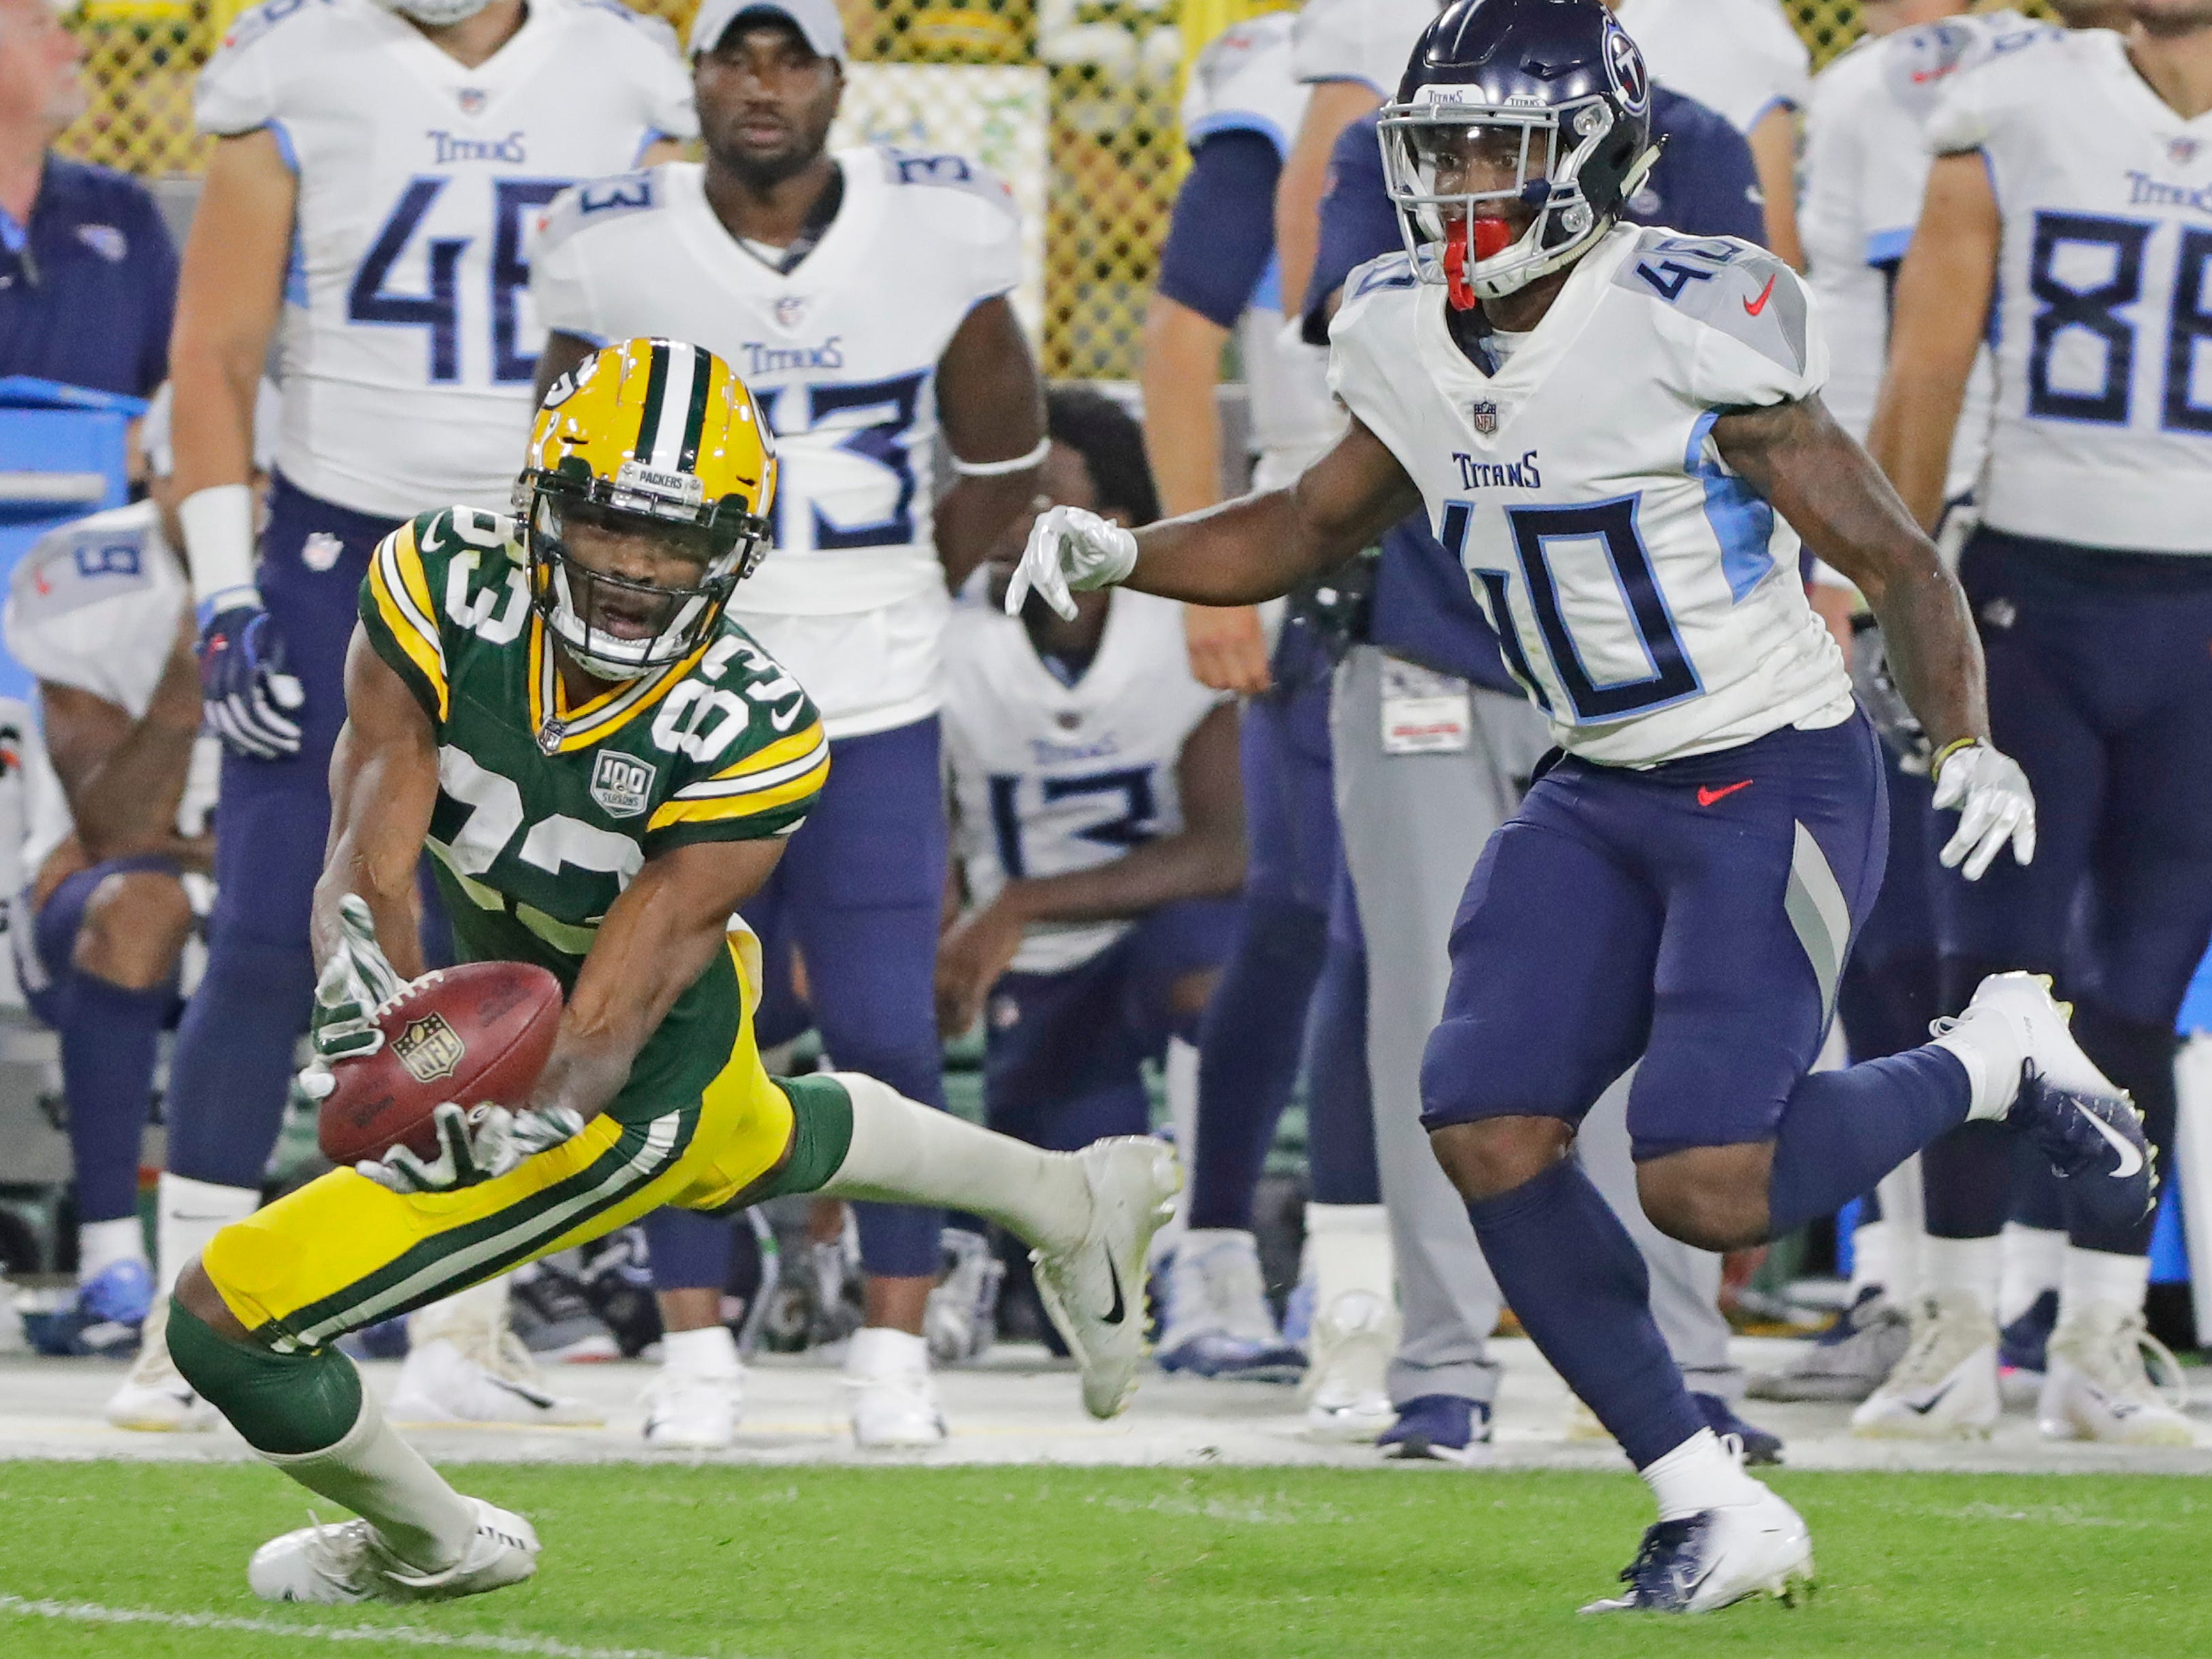 Green Bay Packers wide receiver Marquez Valdes-Scantling (83) attempts to catch a pass against Tennessee Titans cornerback Rico Gafford (40) in the fourth quarter of an NFL preseason game at Lambeau Field on Thursday, August 9, 2018 in Green Bay, Wis.